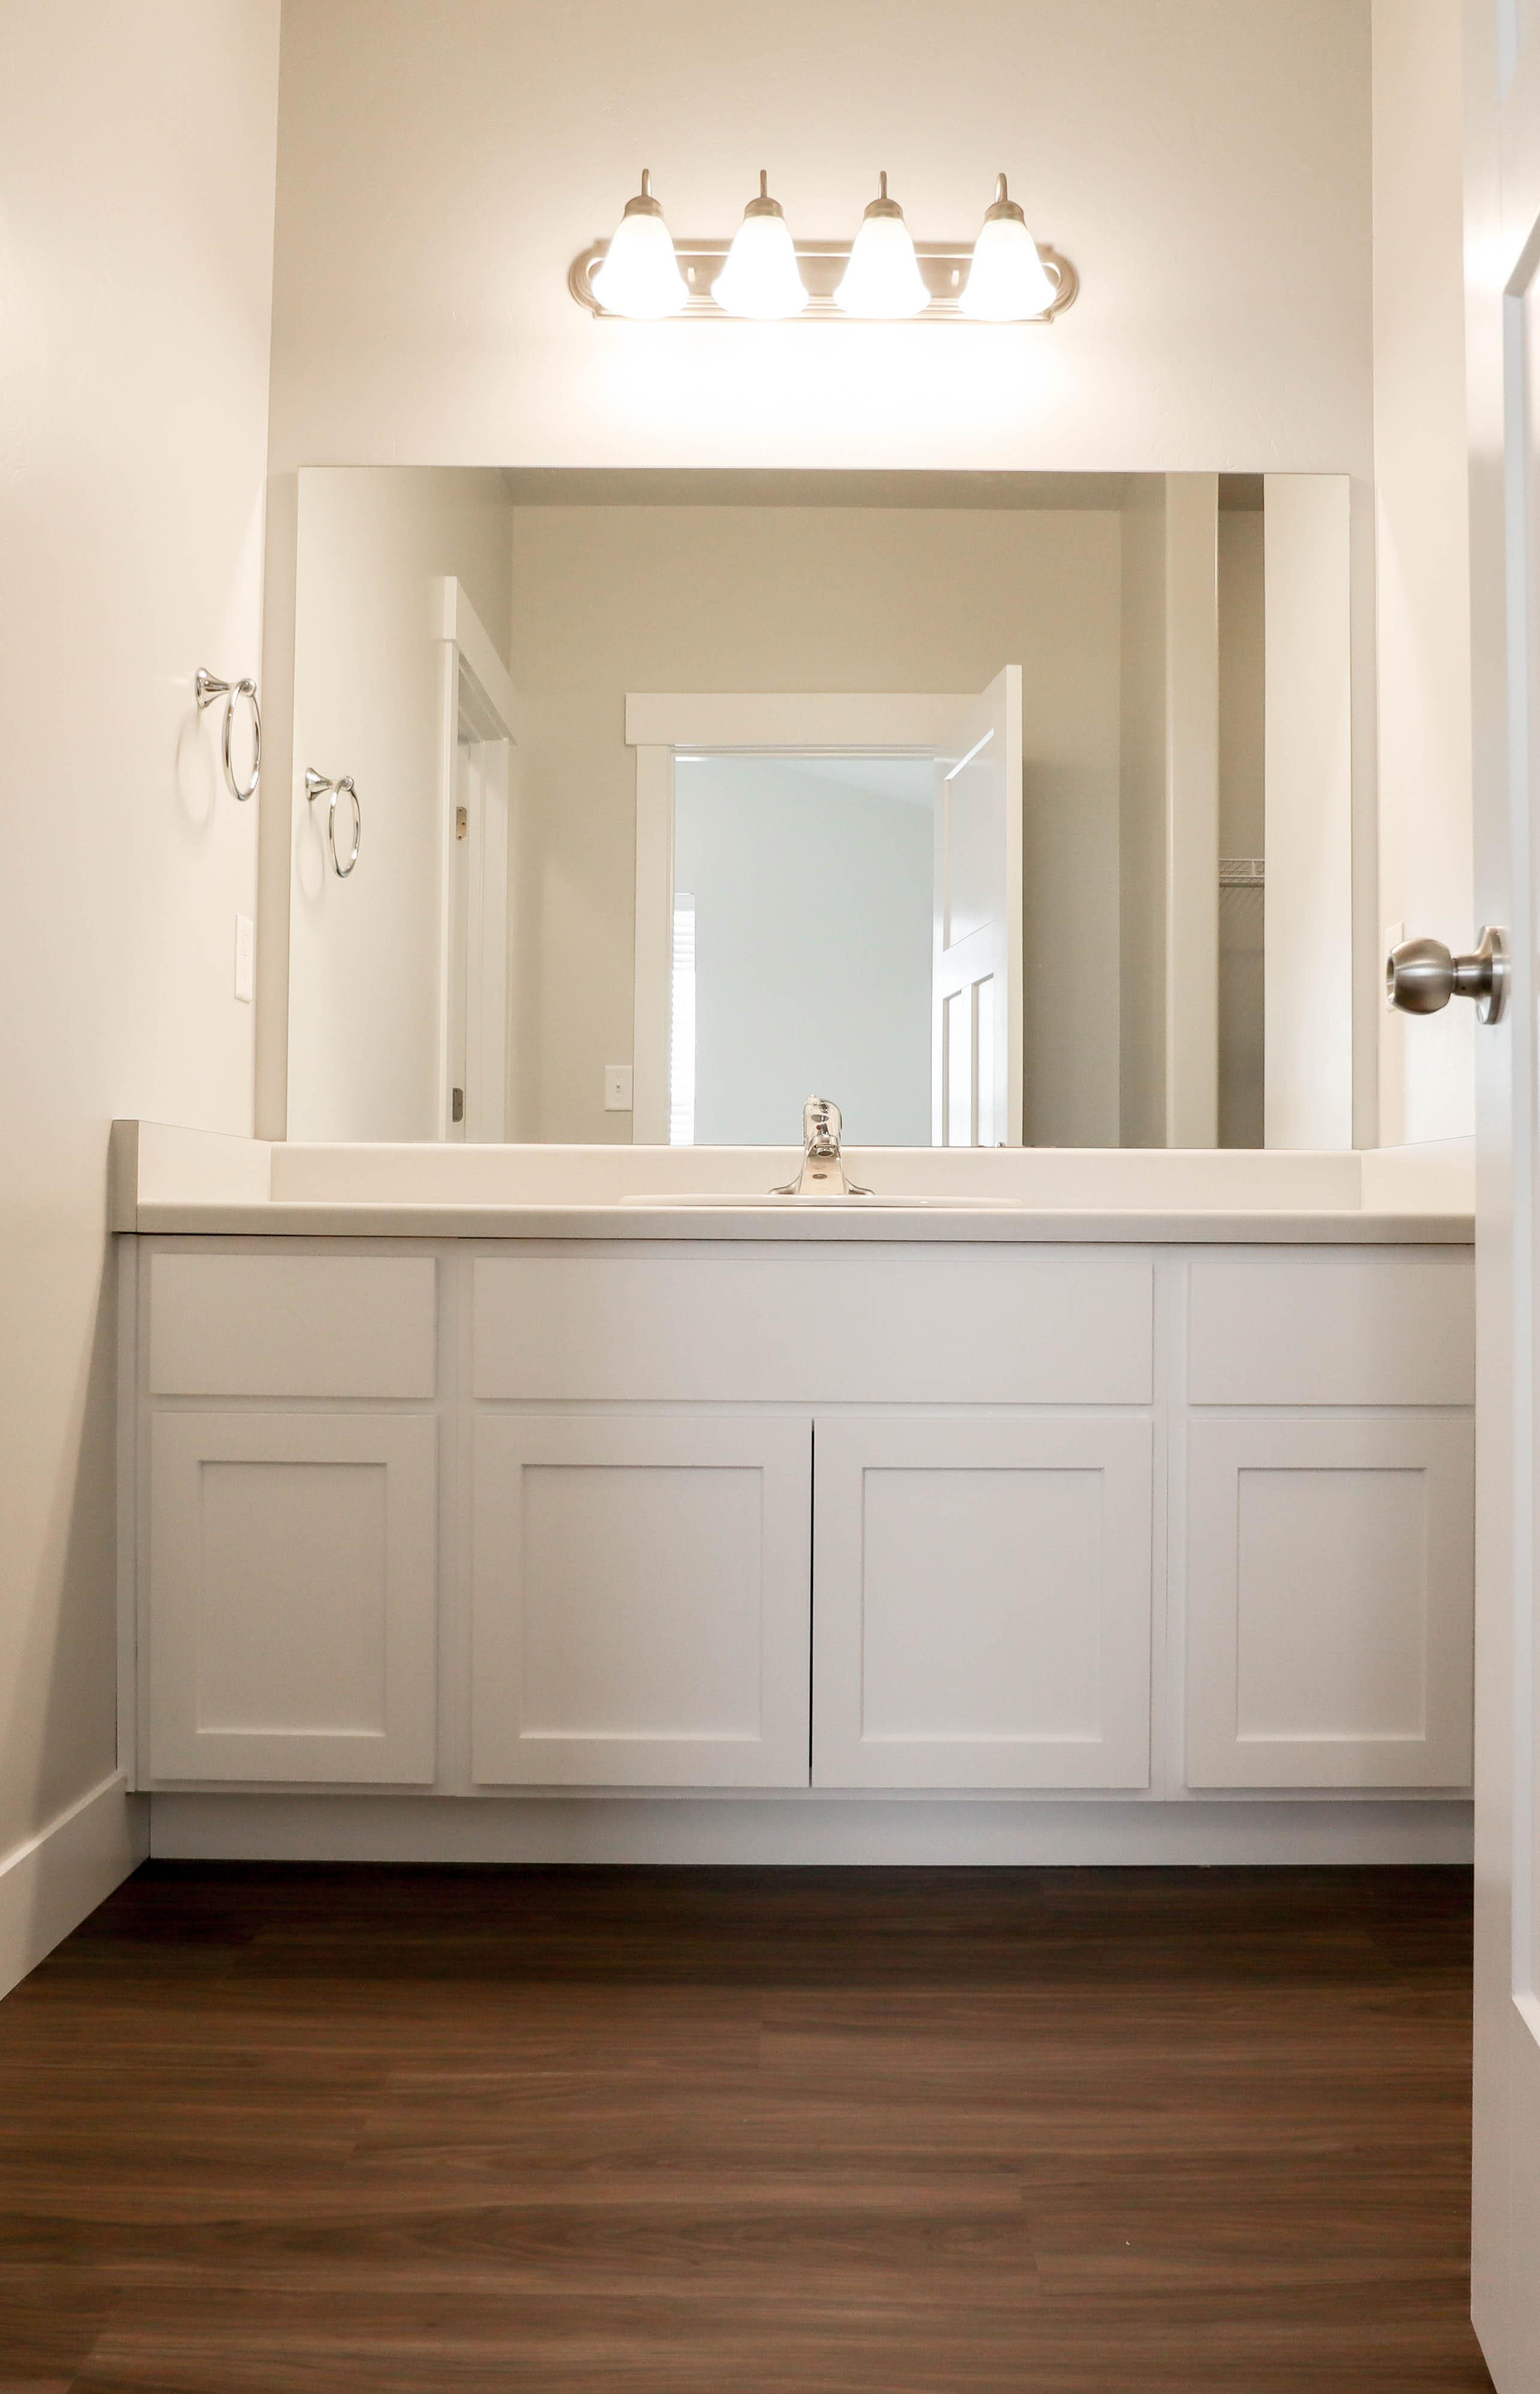 Bathroom featured in the Condominium A Third Level By EDGEhomes in Salt Lake City-Ogden, UT